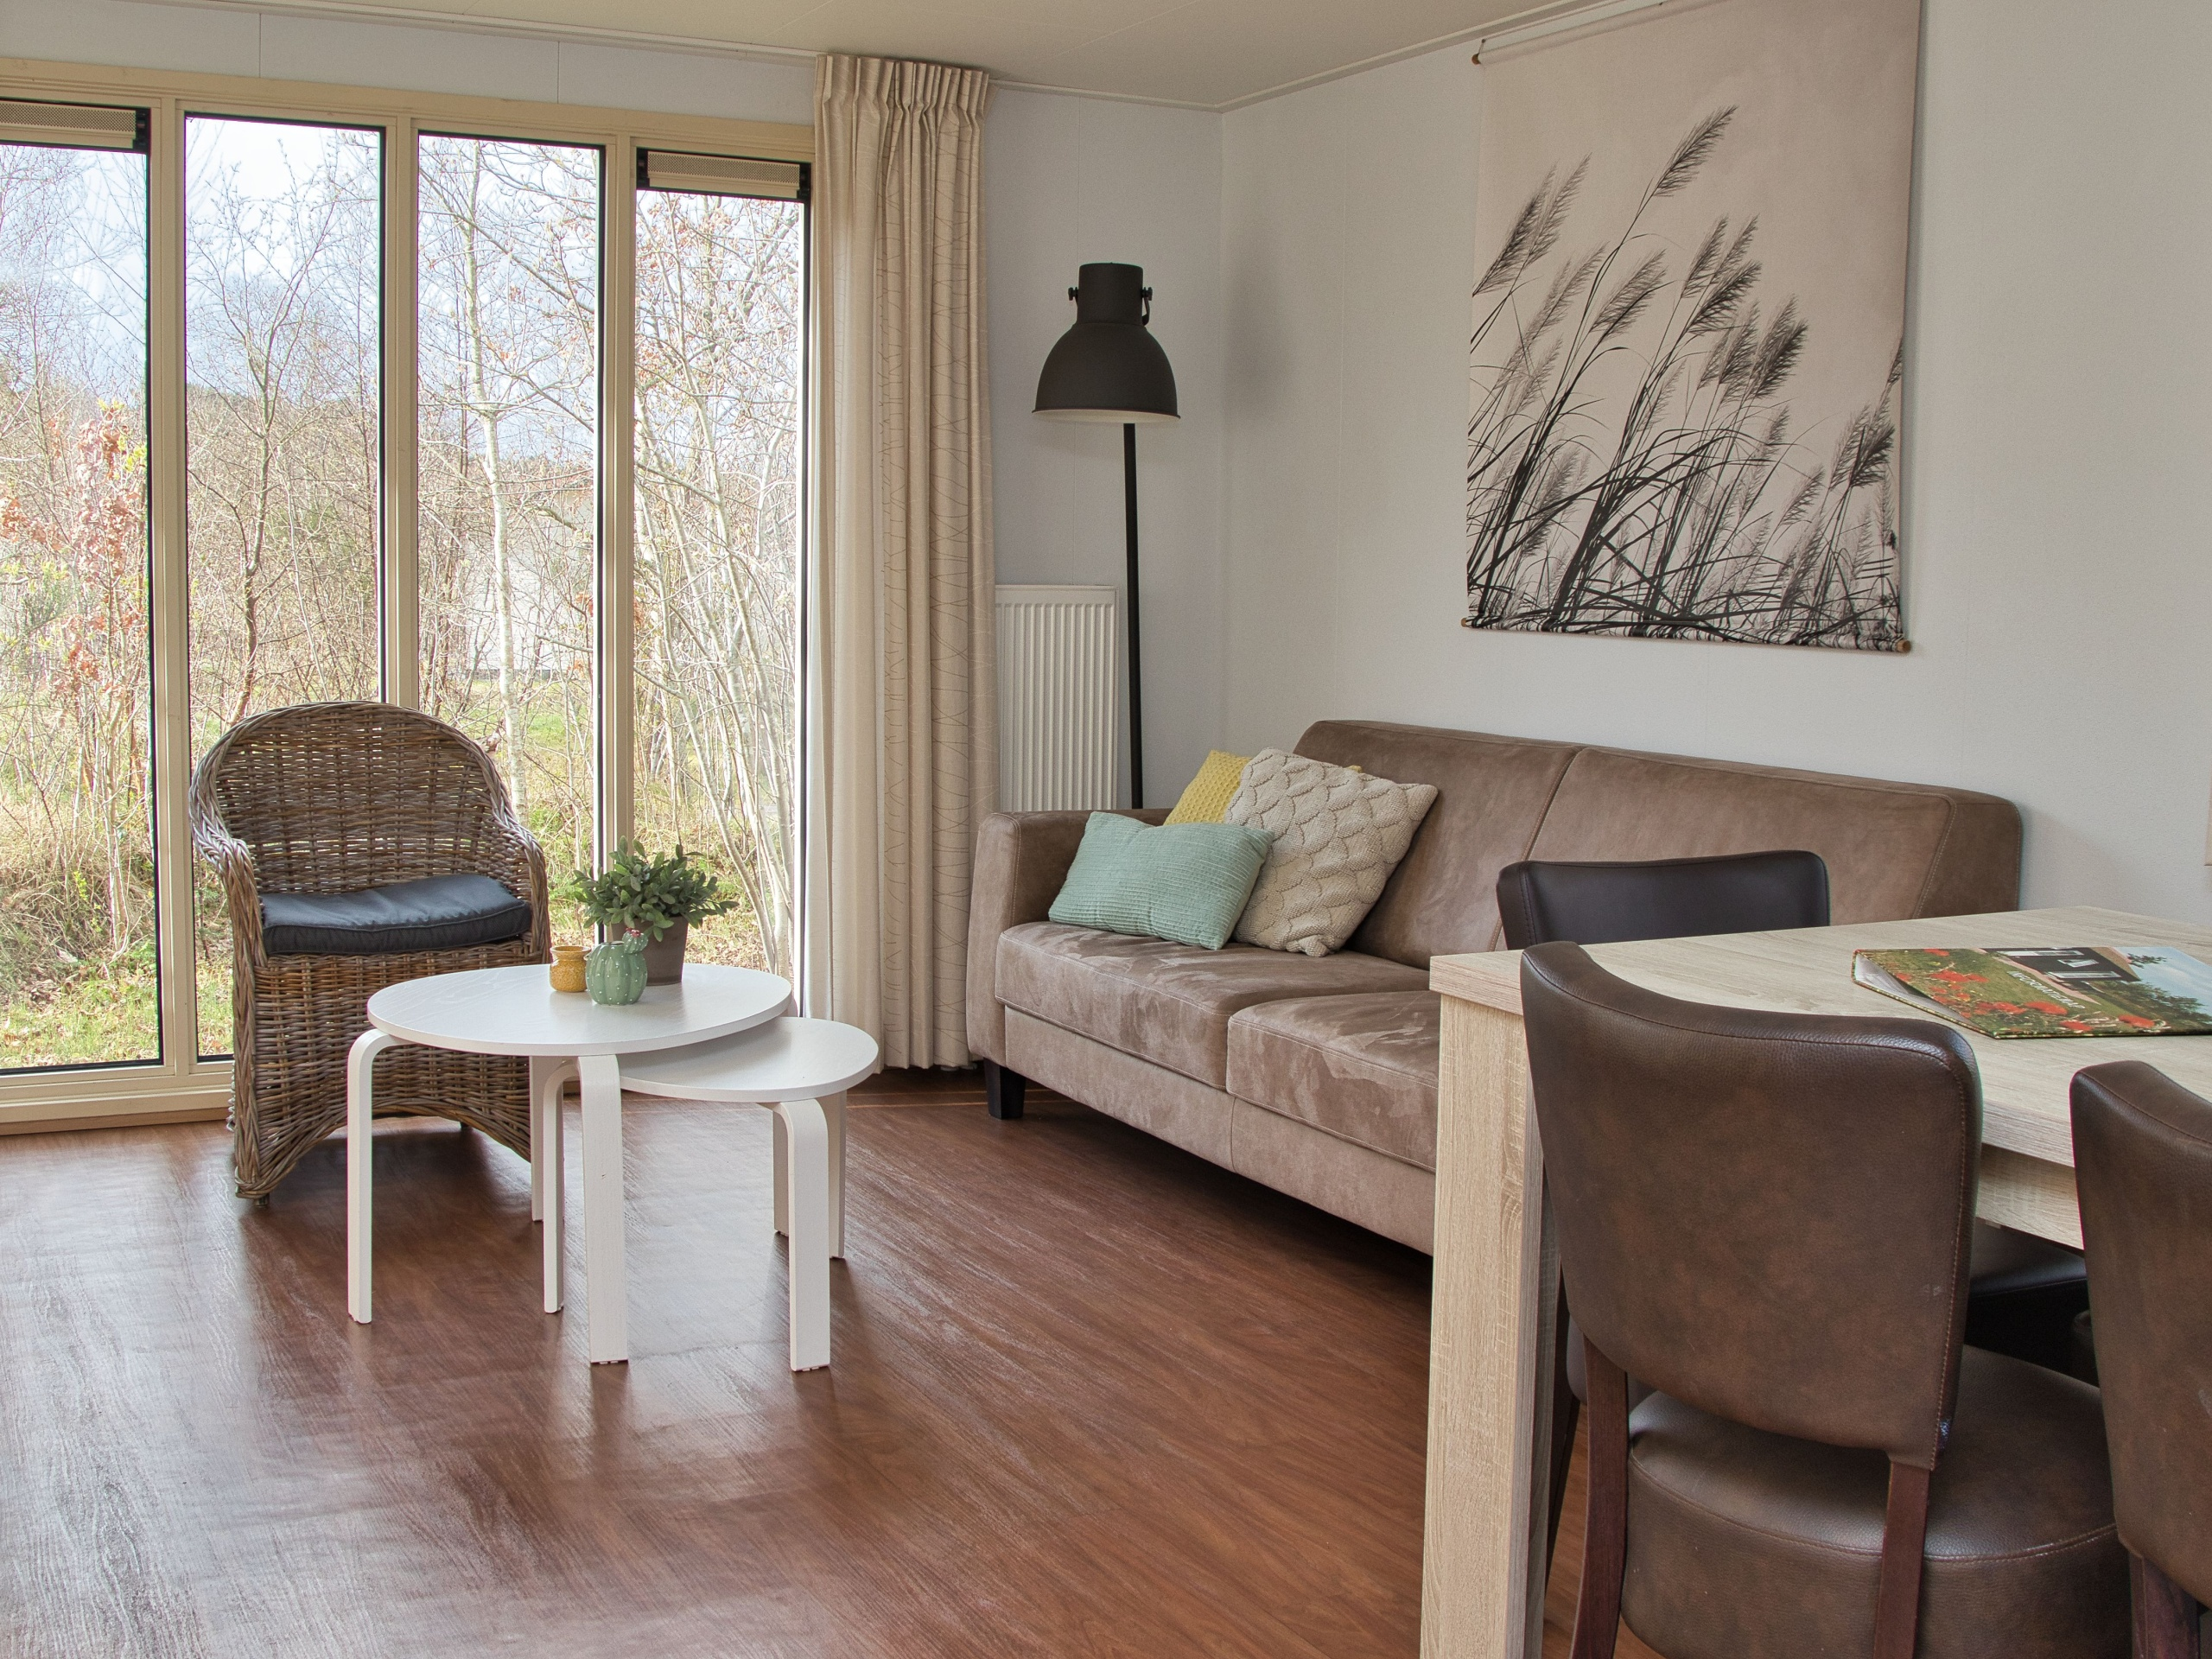 Comfortable chalet in a quiet location with a quiet and sunny garden near the forest, dunes and beach